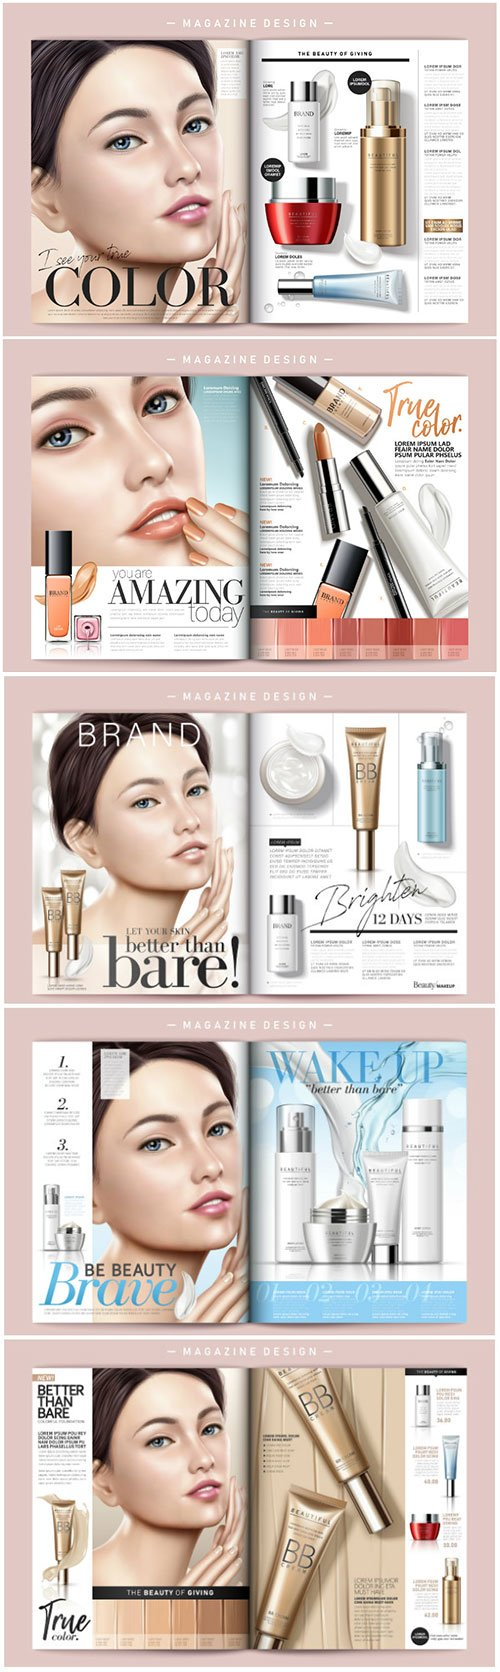 Cosmetic magazine vector template, attractive model with product containers in 3d illustration # 2